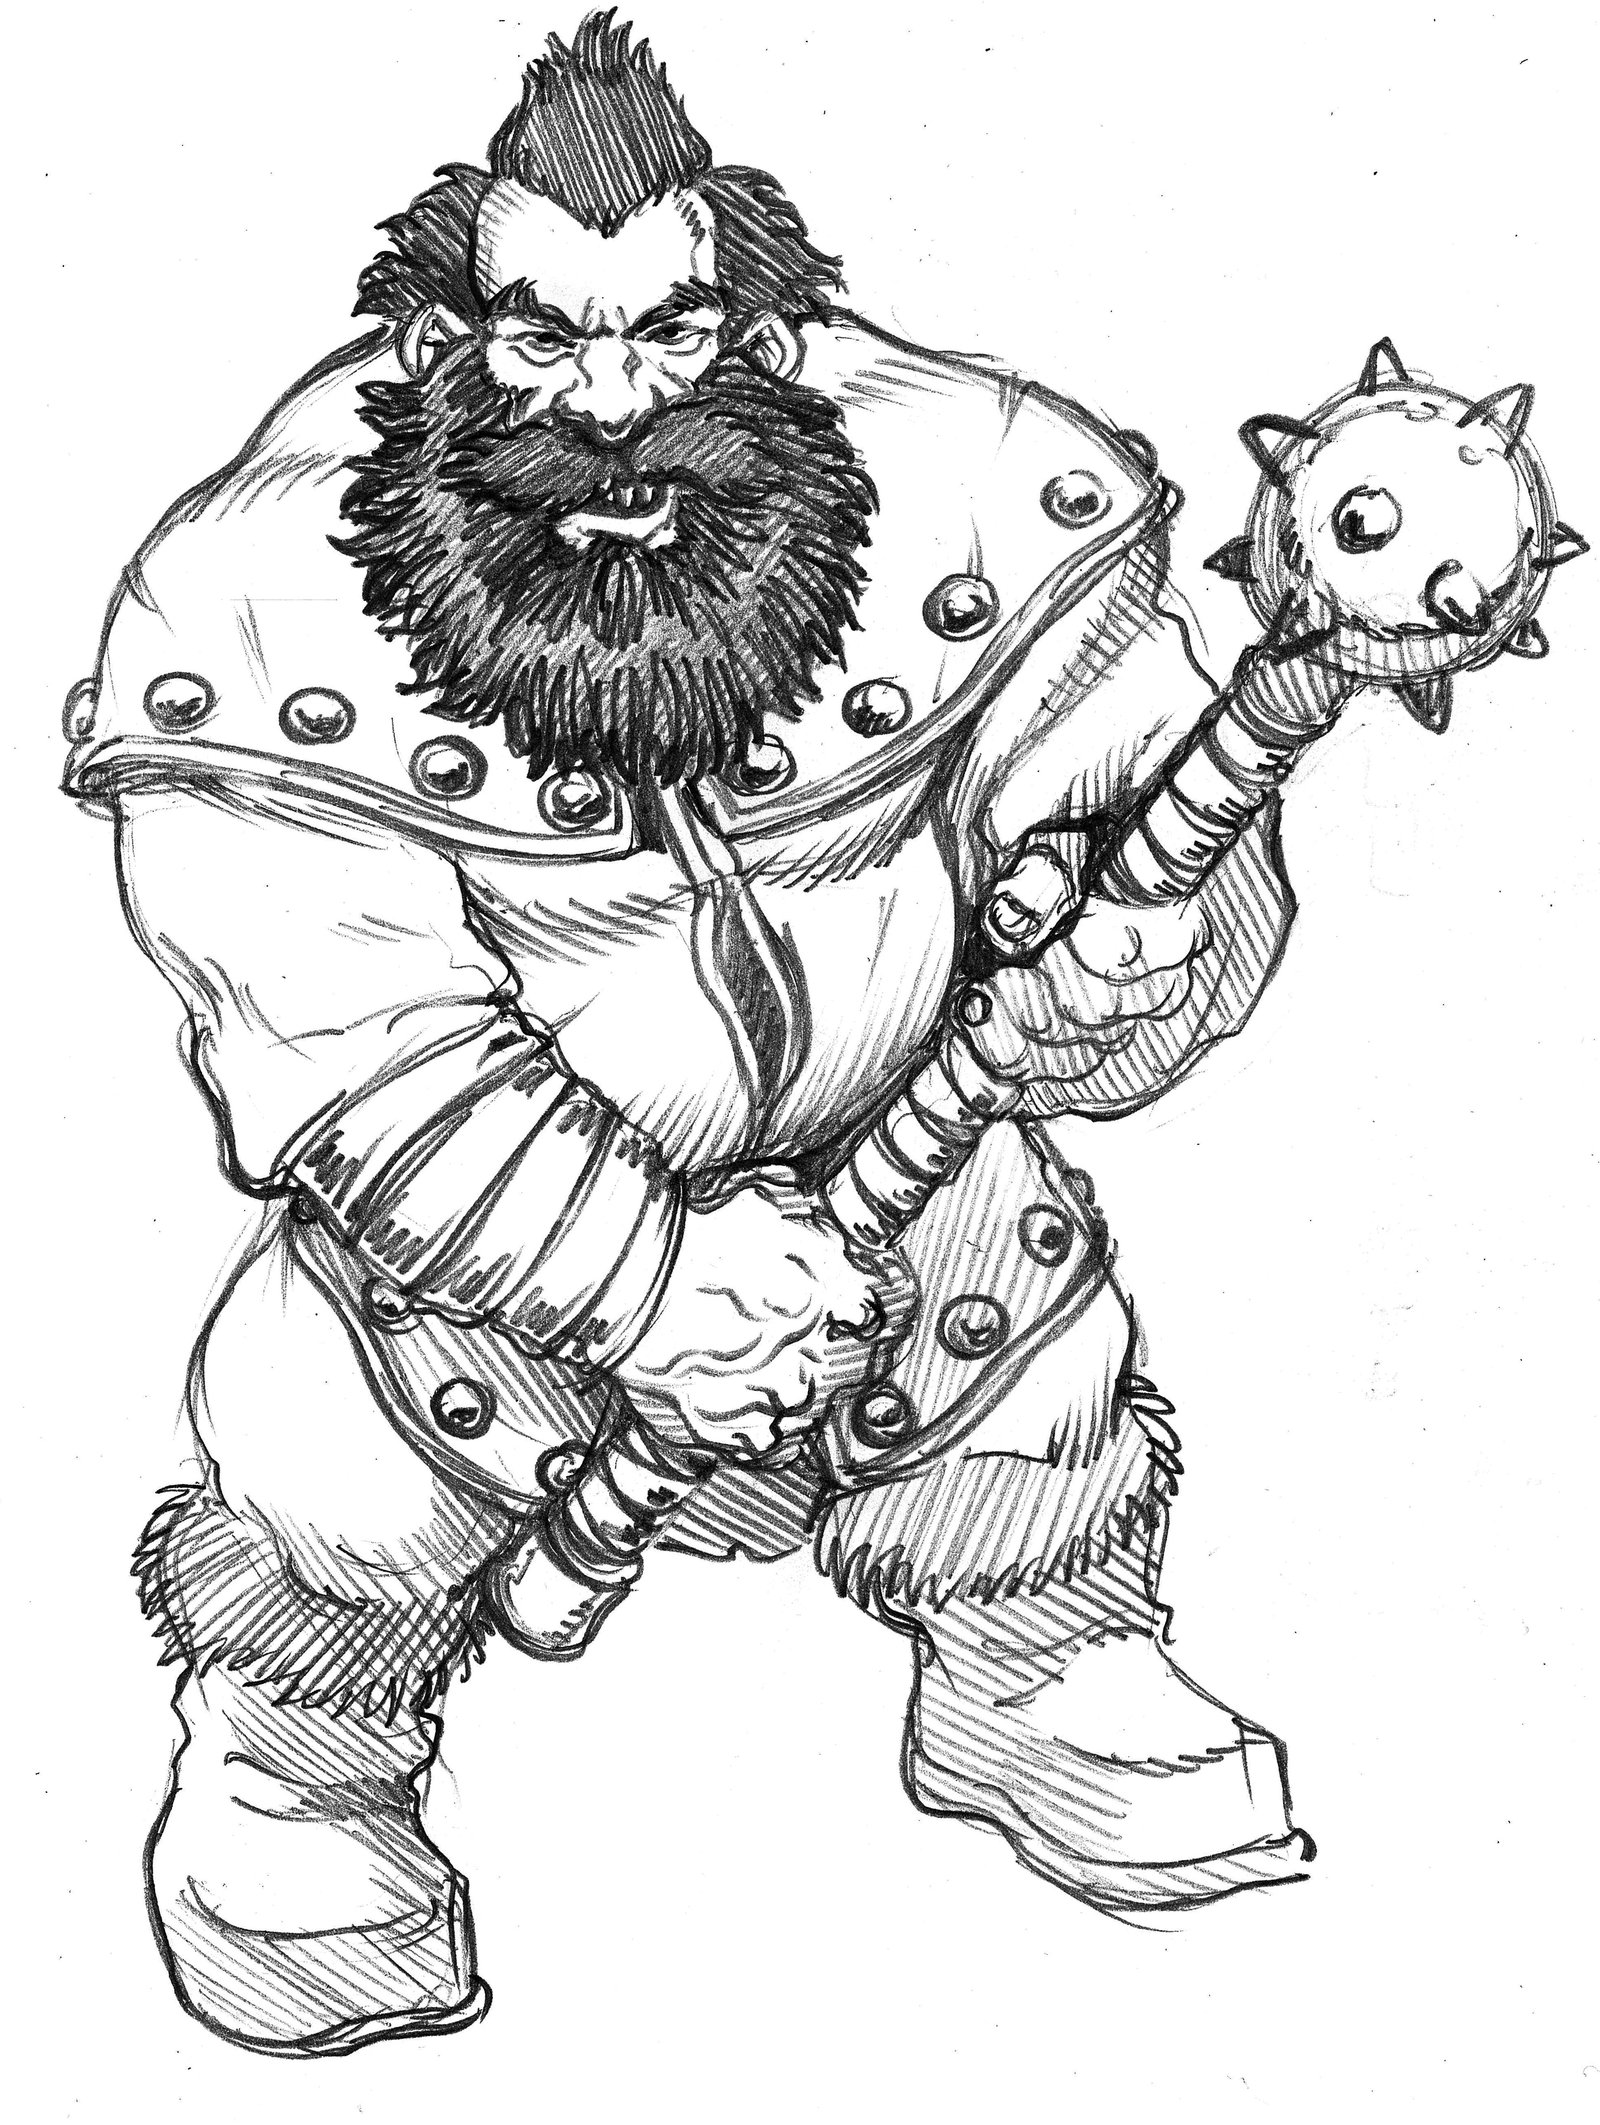 Drawn dwarf gnome With a with on by